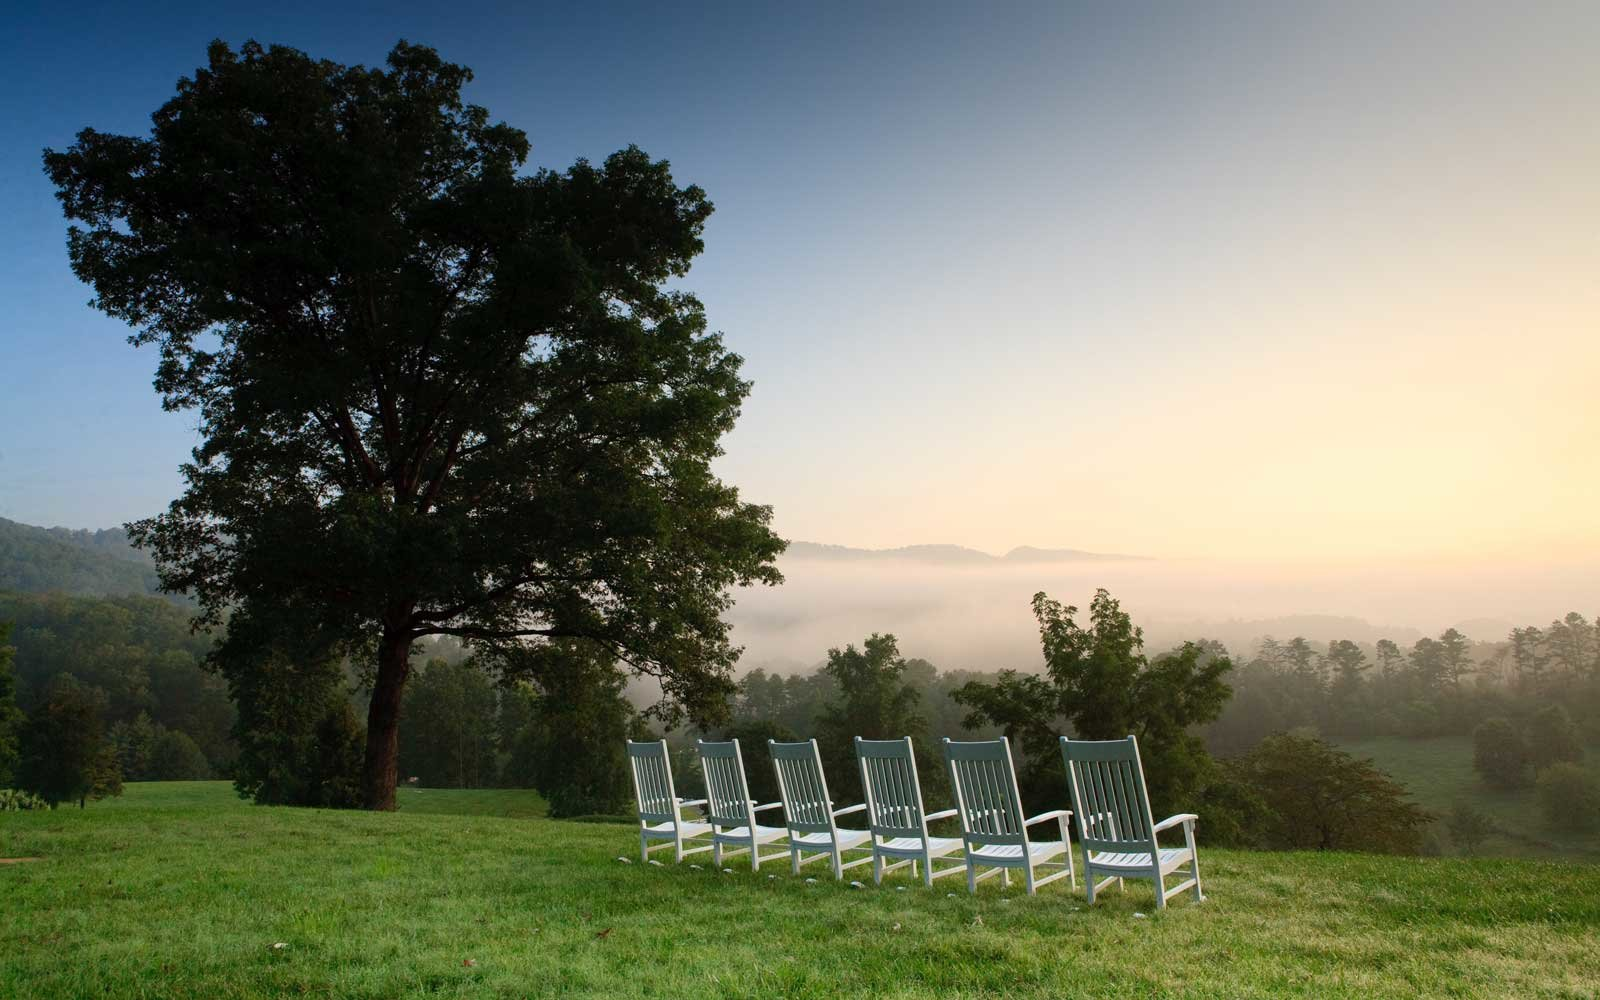 Trip Ideas for Retired Outdoor Enthusiasts